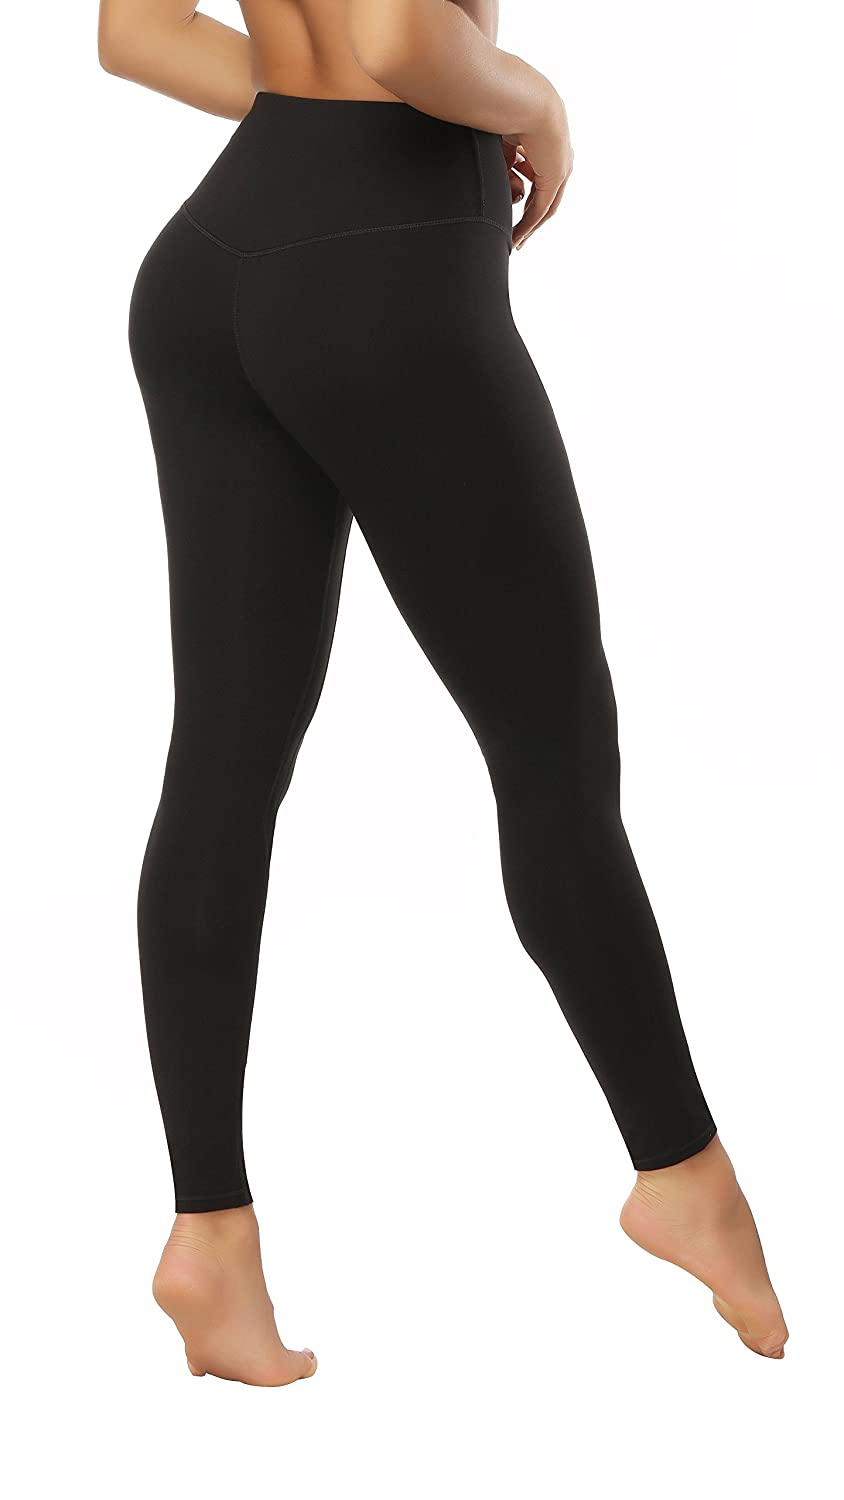 3507c907b7b2e6 High Waist Design & Health Fitness: KAYVEN MAS women's workout pants are  designed with high-waist,tummy control wide waistband contours your curves  and give ...